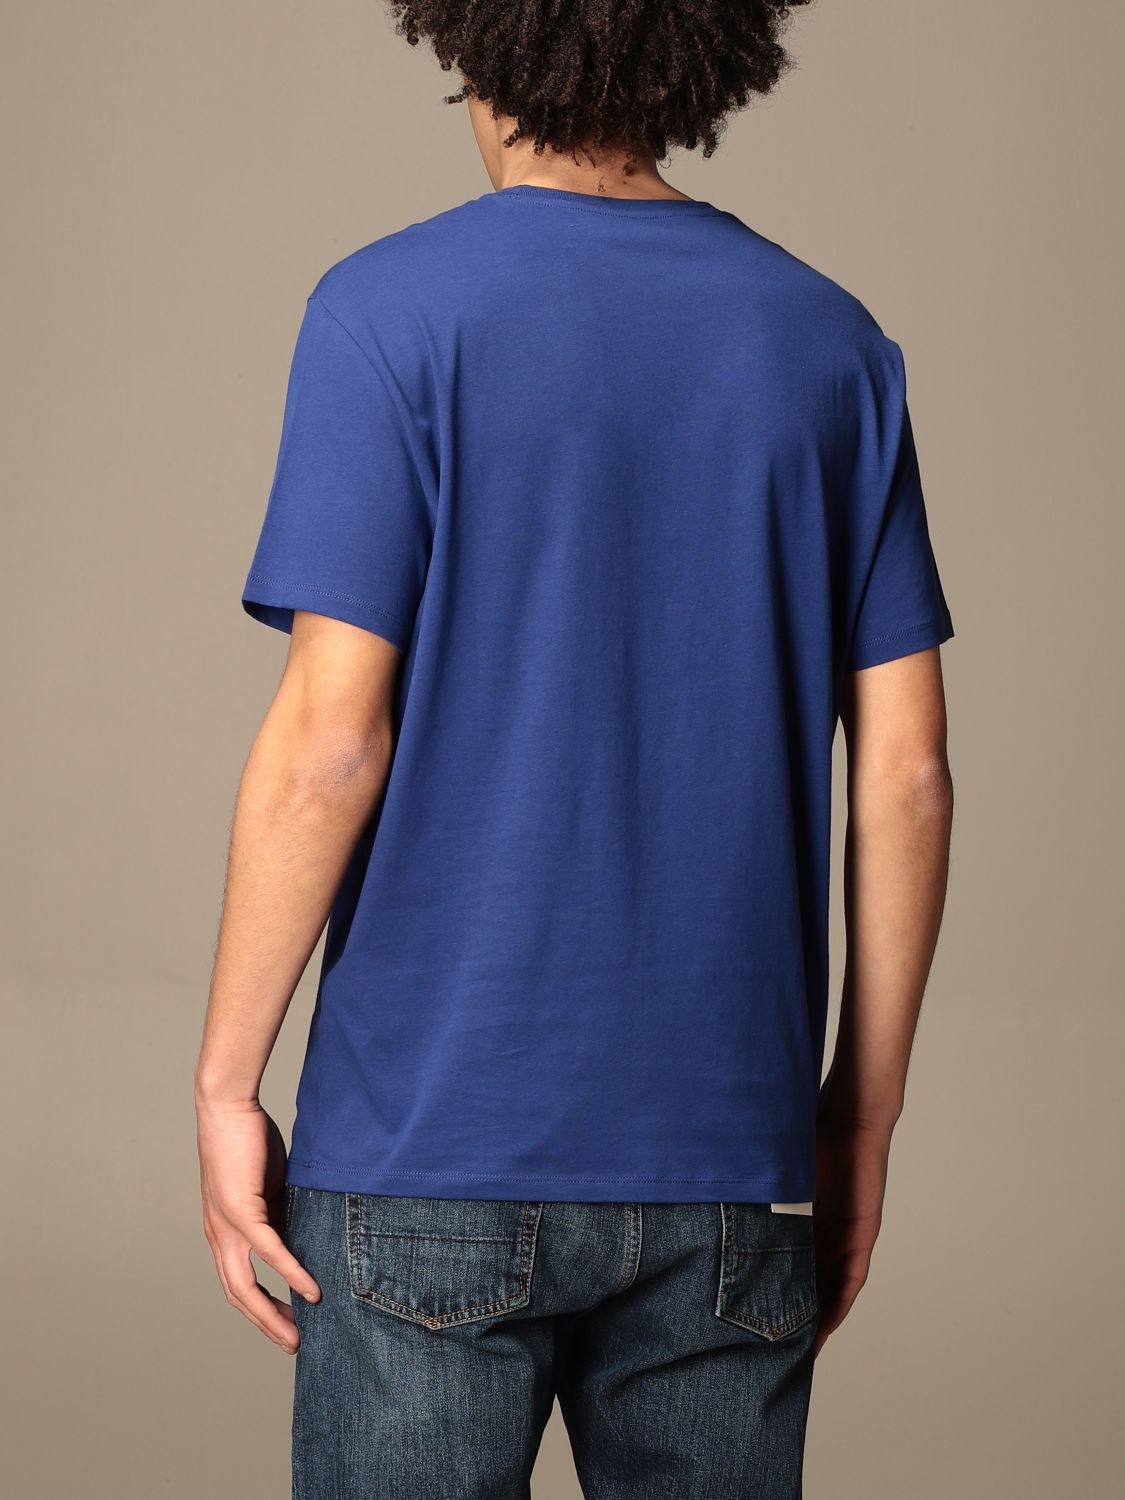 T-shirt Armani Exchange: T-shirt men Armani Exchange royal blue 2